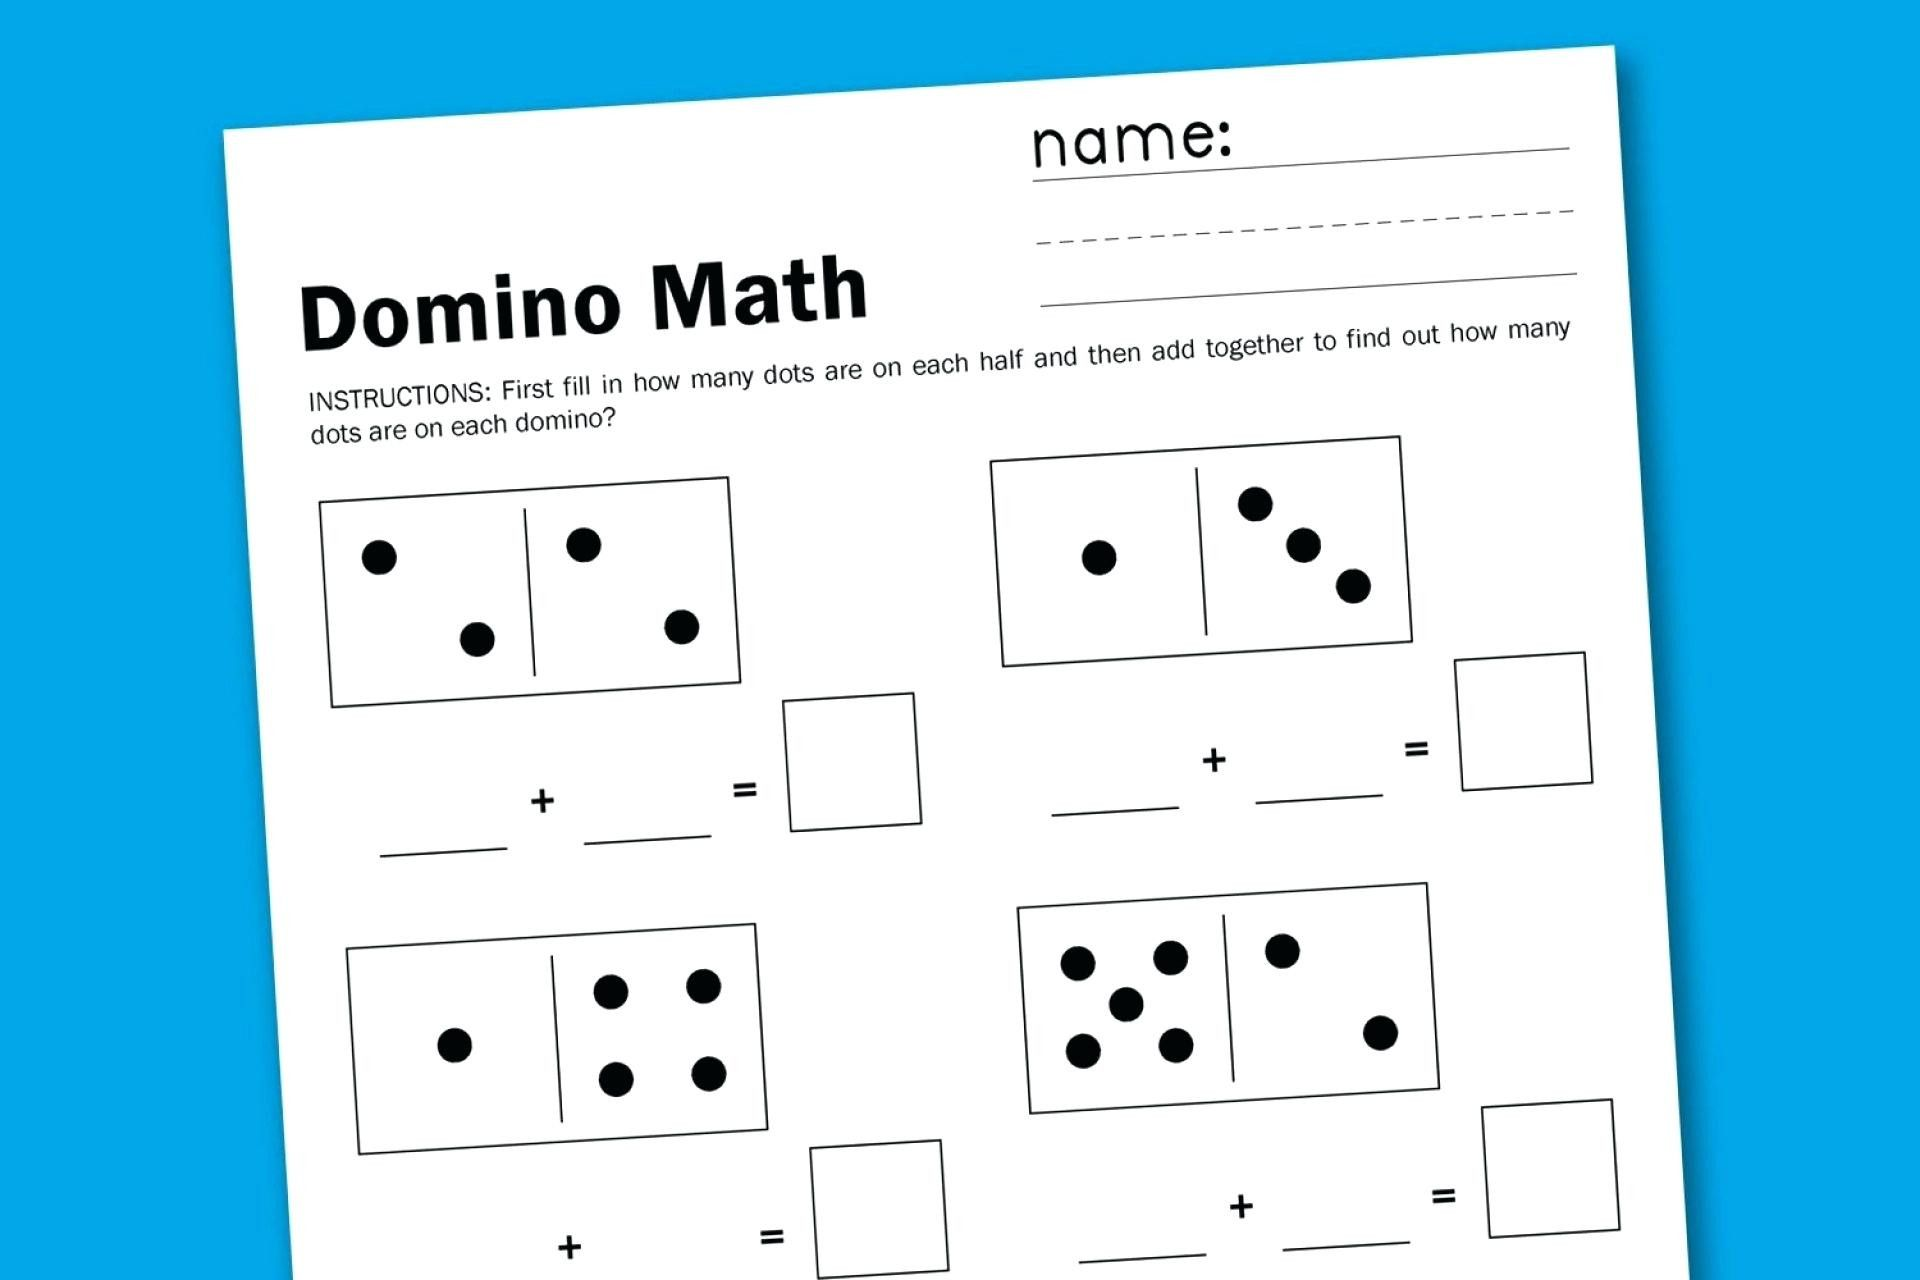 hight resolution of 5 Free Math Worksheets First Grade 1 Addition Number Lines math worksheets  domino addition fr...   Free math worksheets